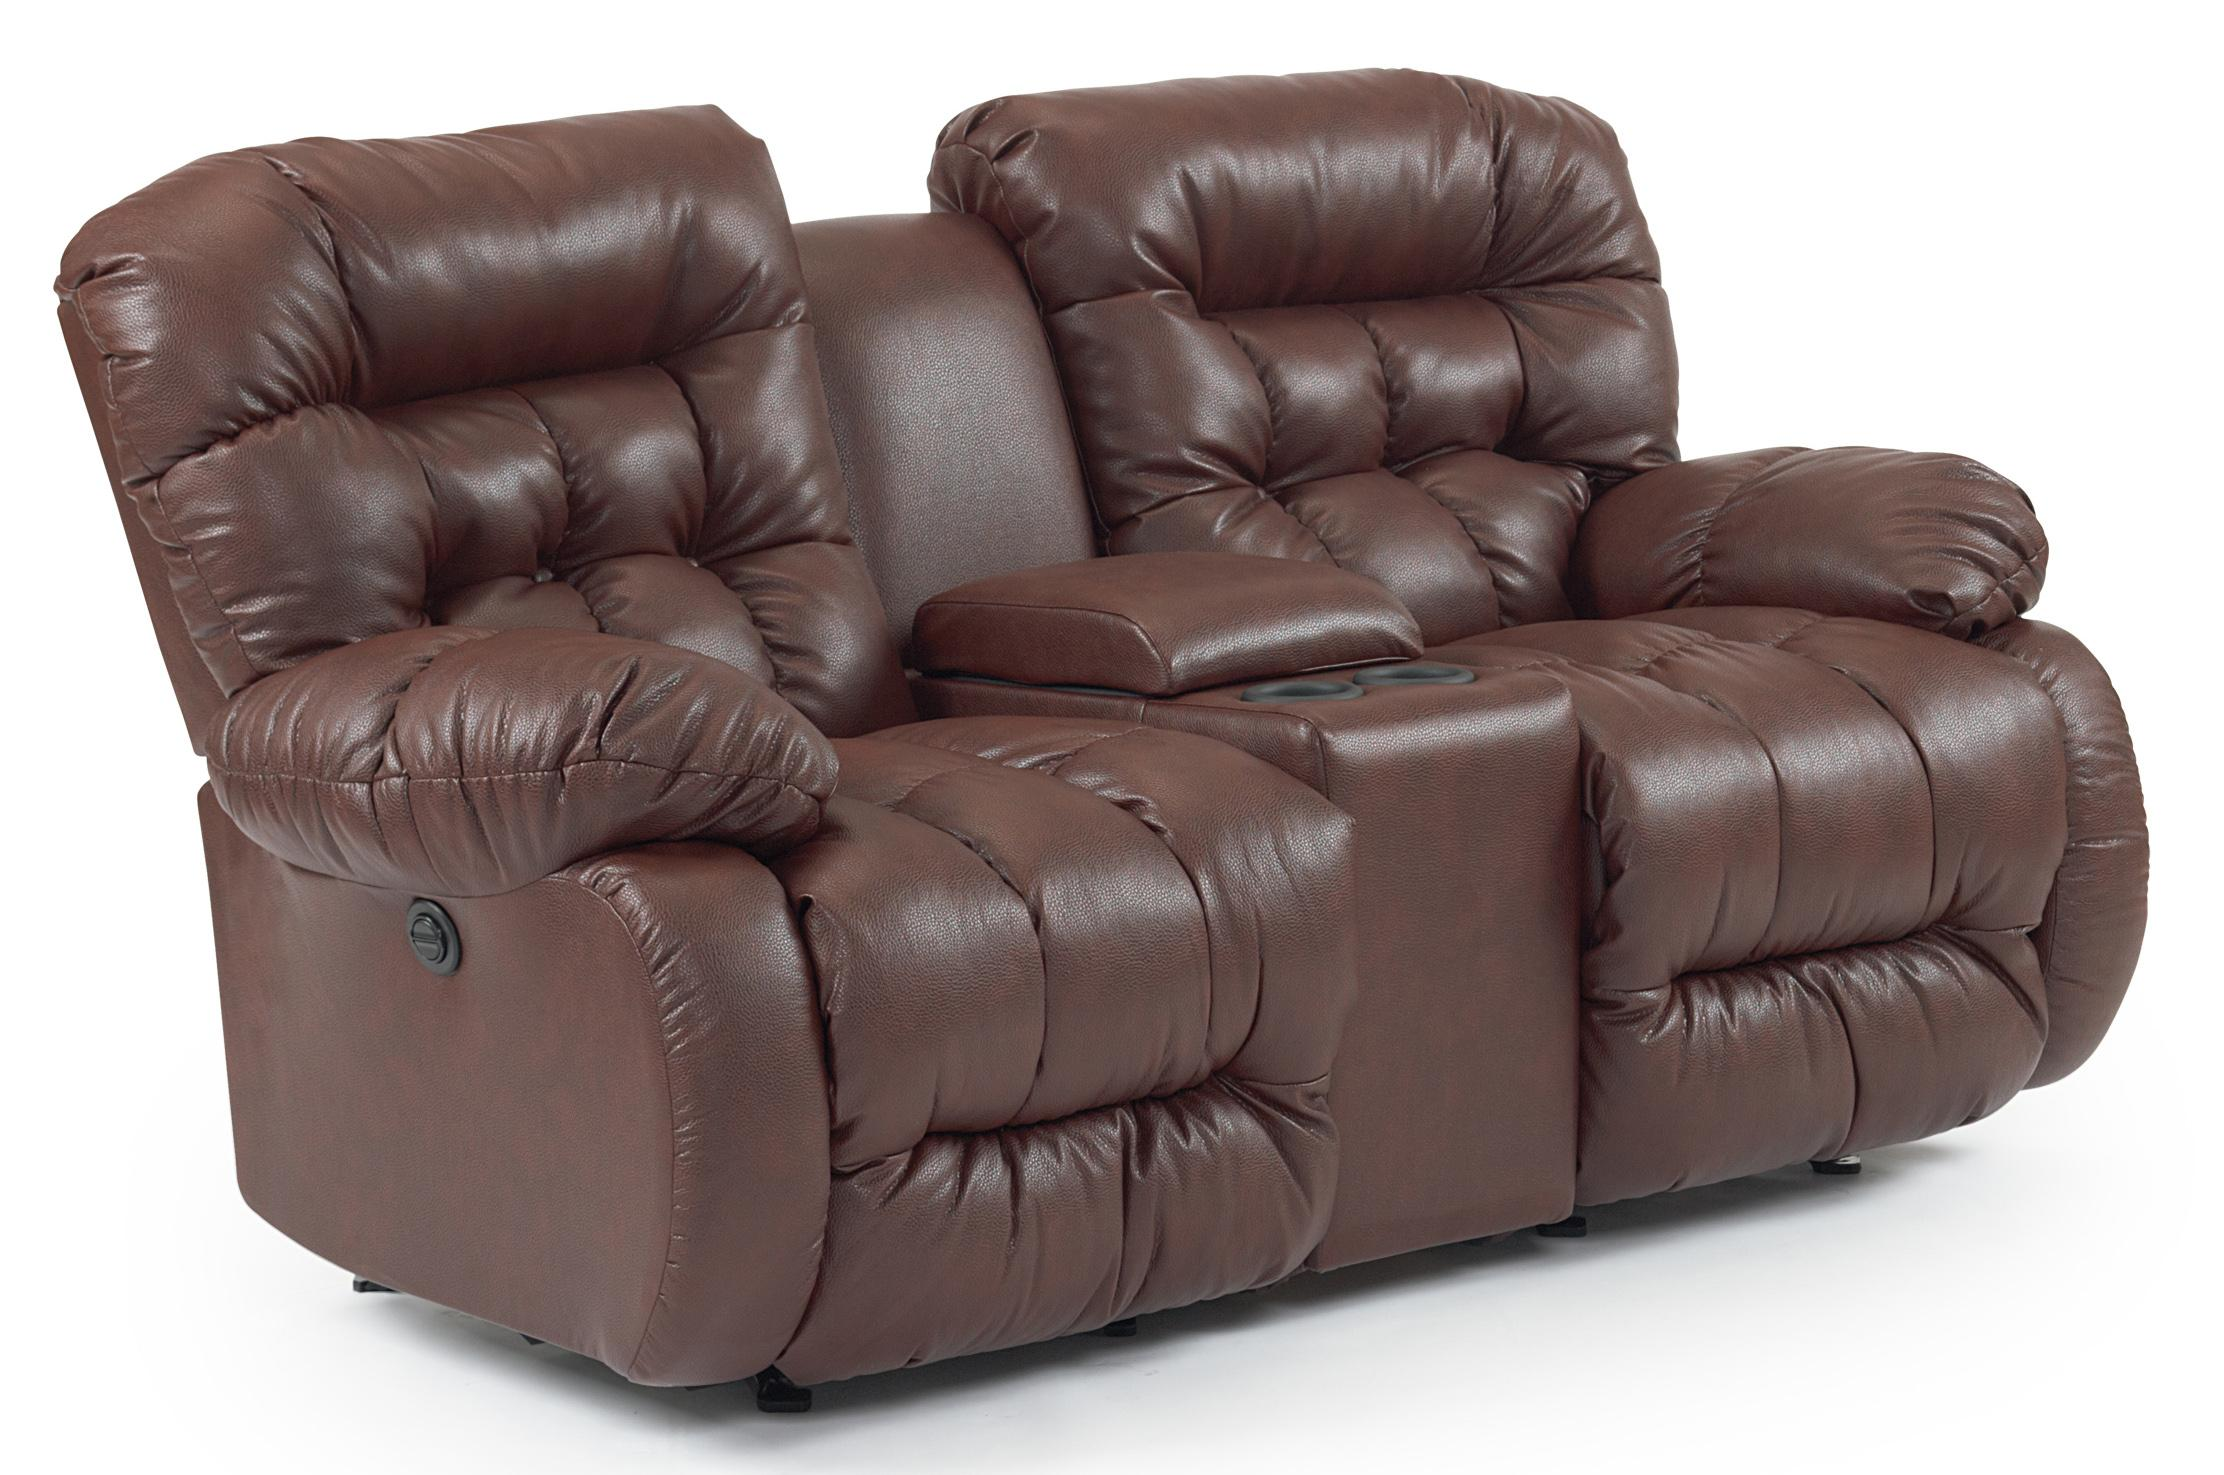 Best Home Furnishings Plusher Power Rocker Reclining Loveseat With Drink Console Wayside